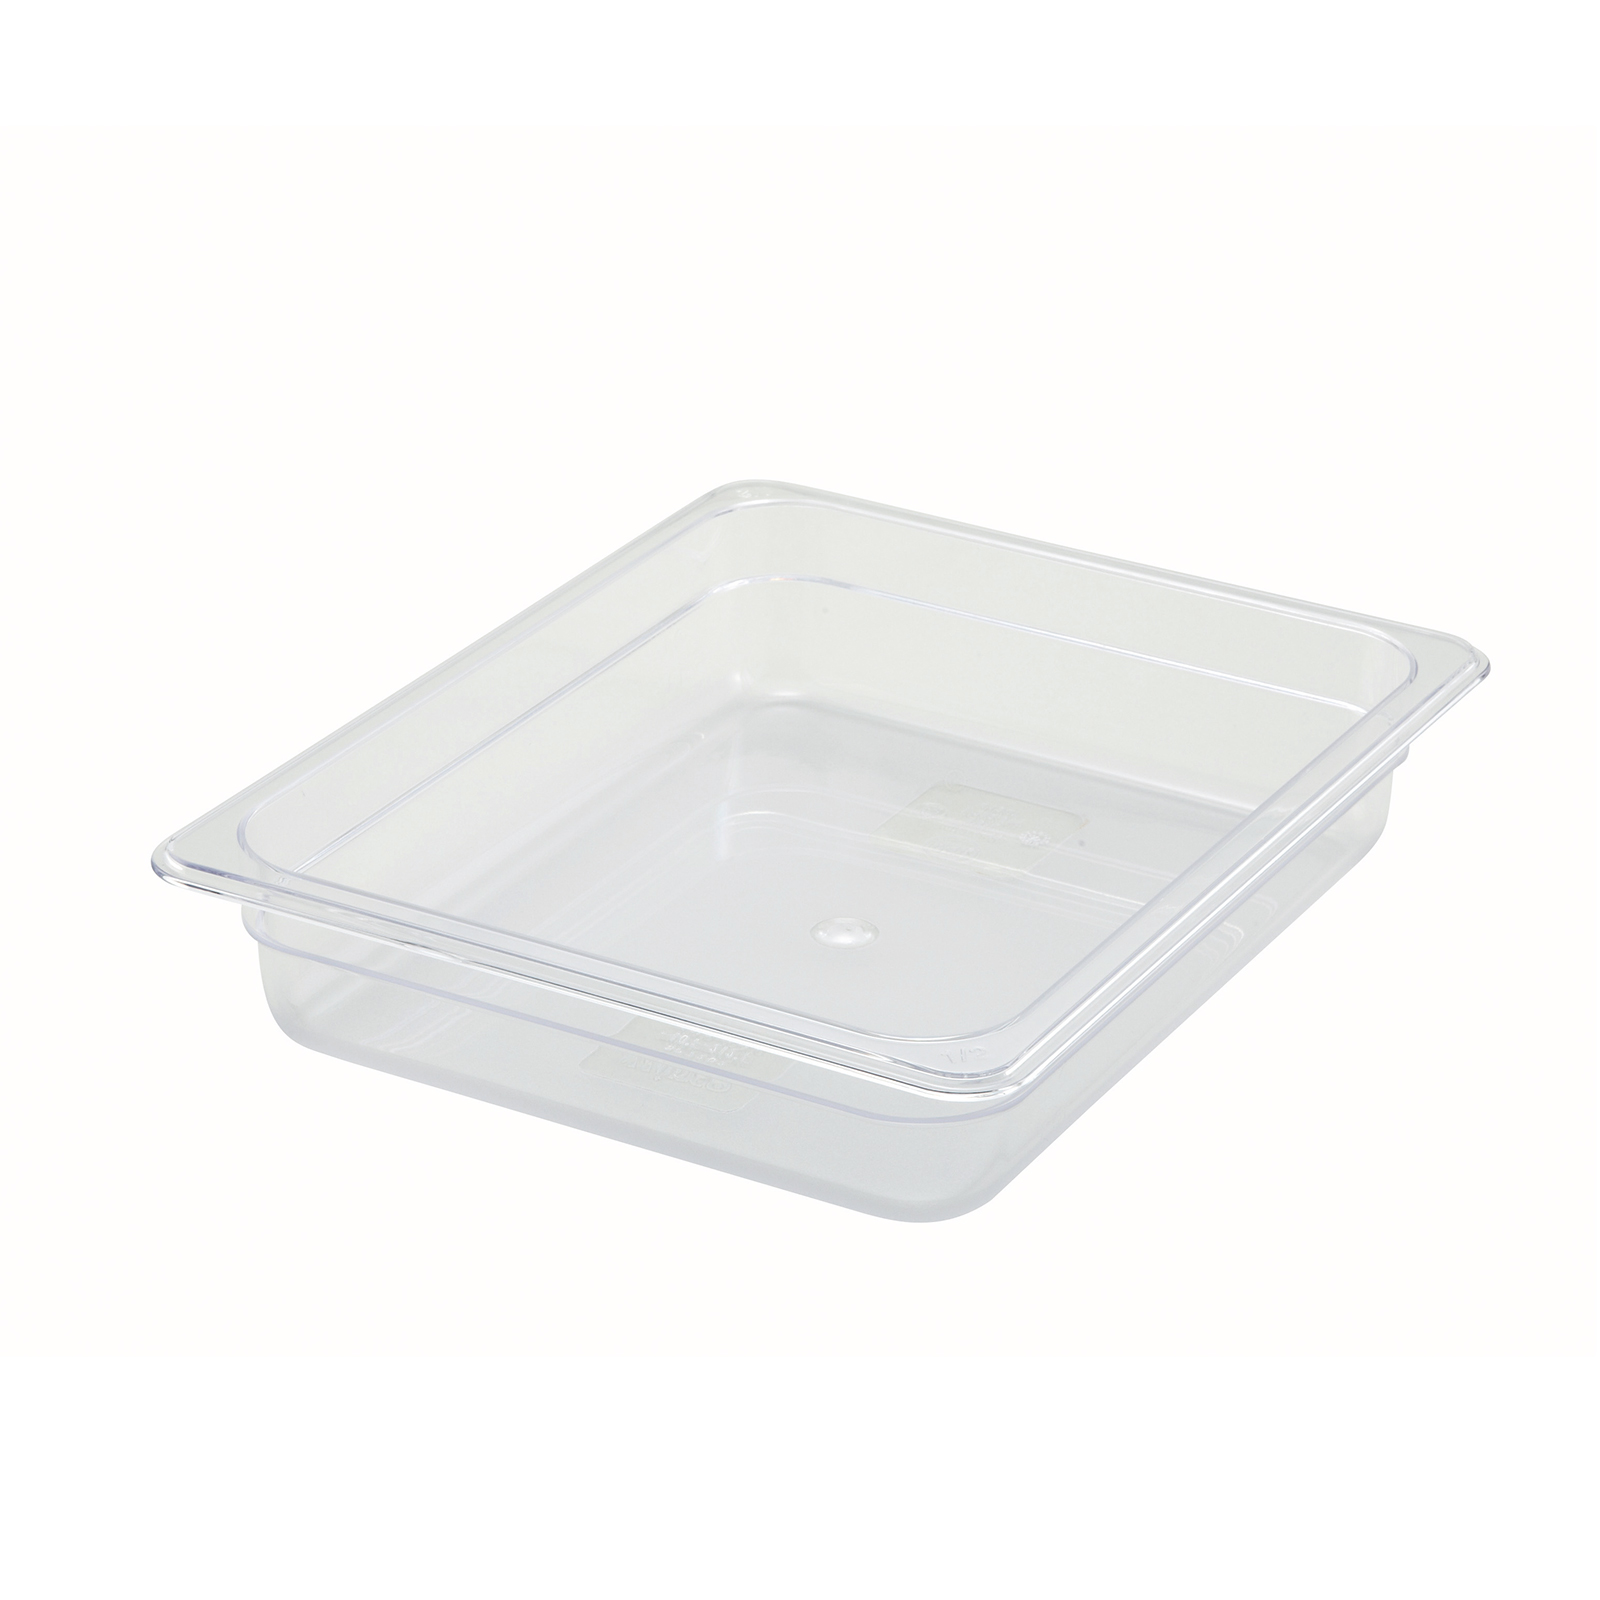 Winco SP7202 food pan, plastic